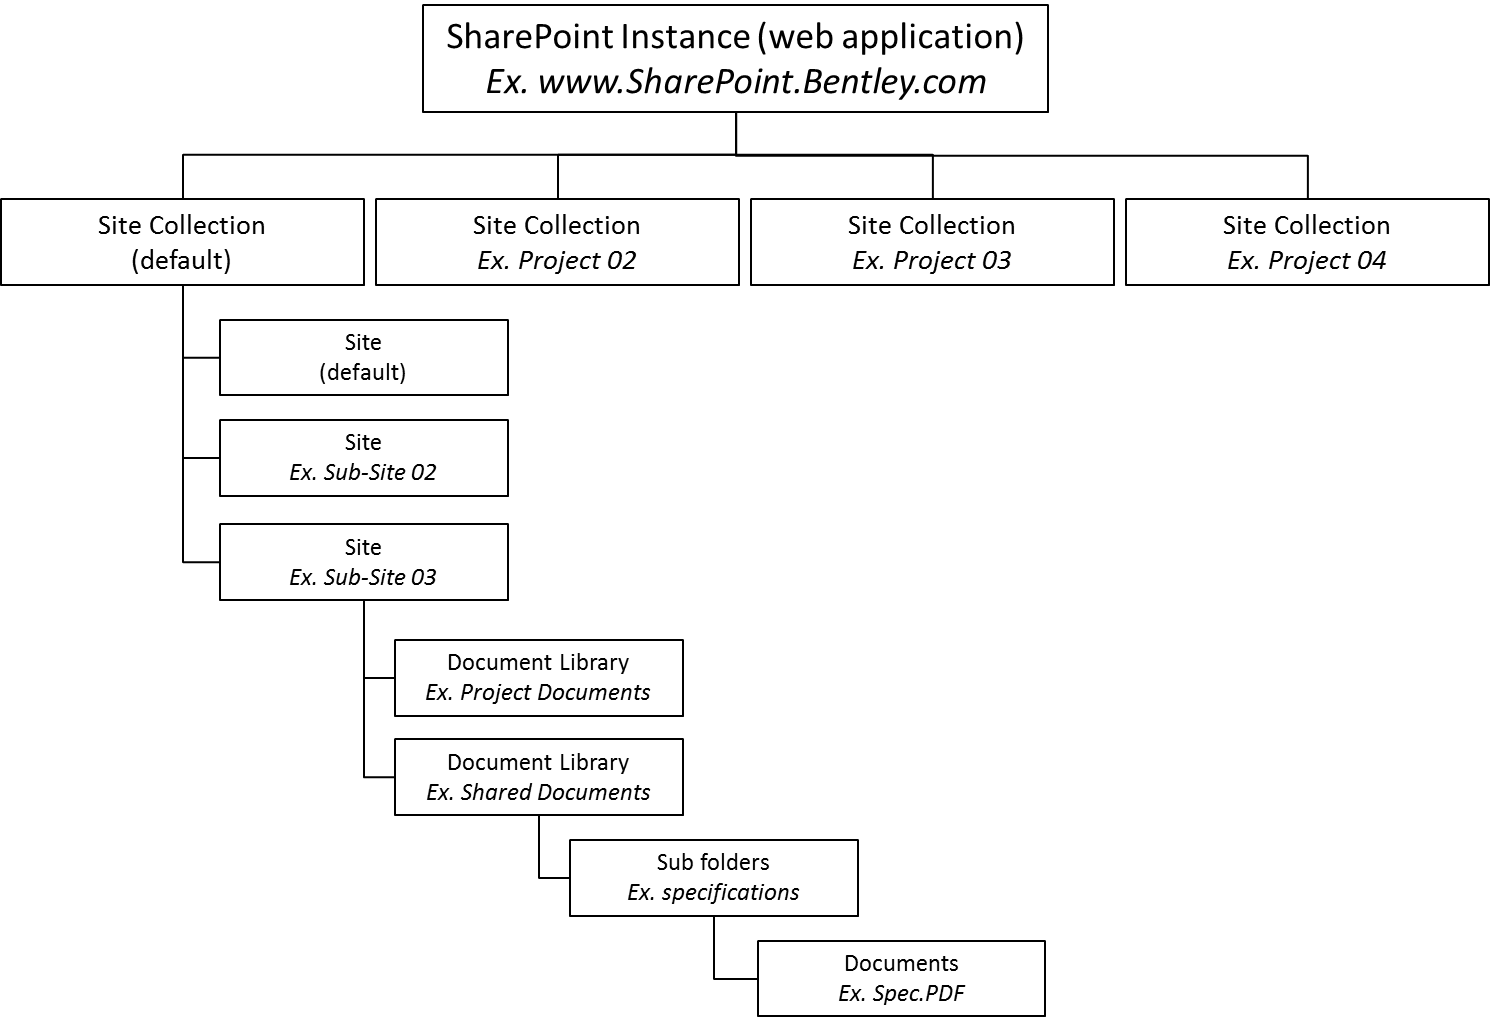 sharepoint 2013 components diagram mercruiser wiring 4 3 provider setup product administration wiki